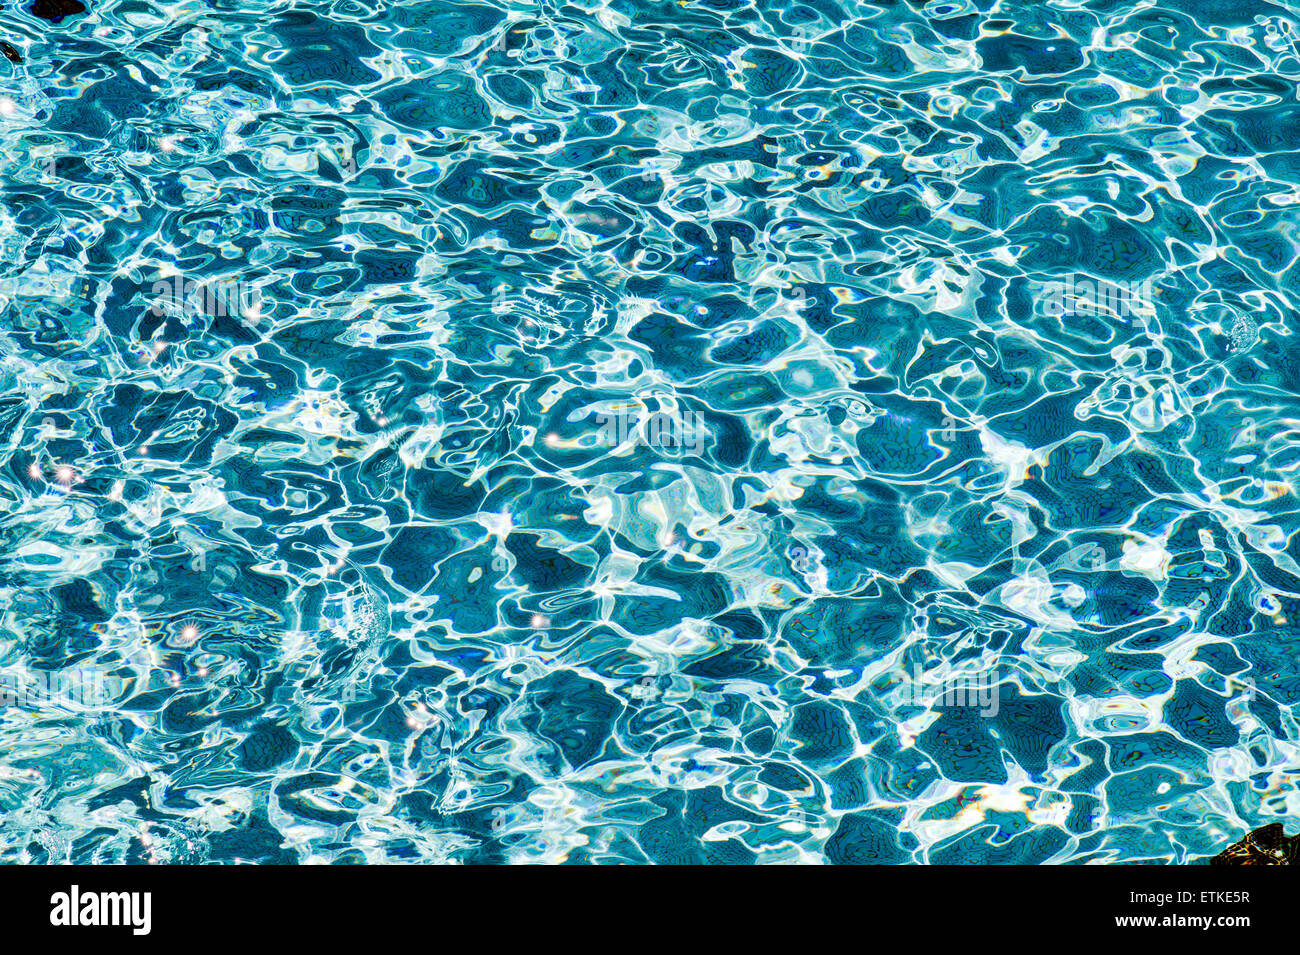 Sunlit reflections in the water of the 26,000 sq. ft. swimming pool, Kaua'i Marriott Resort; Kalapaki Bay, Kaua'i, - Stock Image